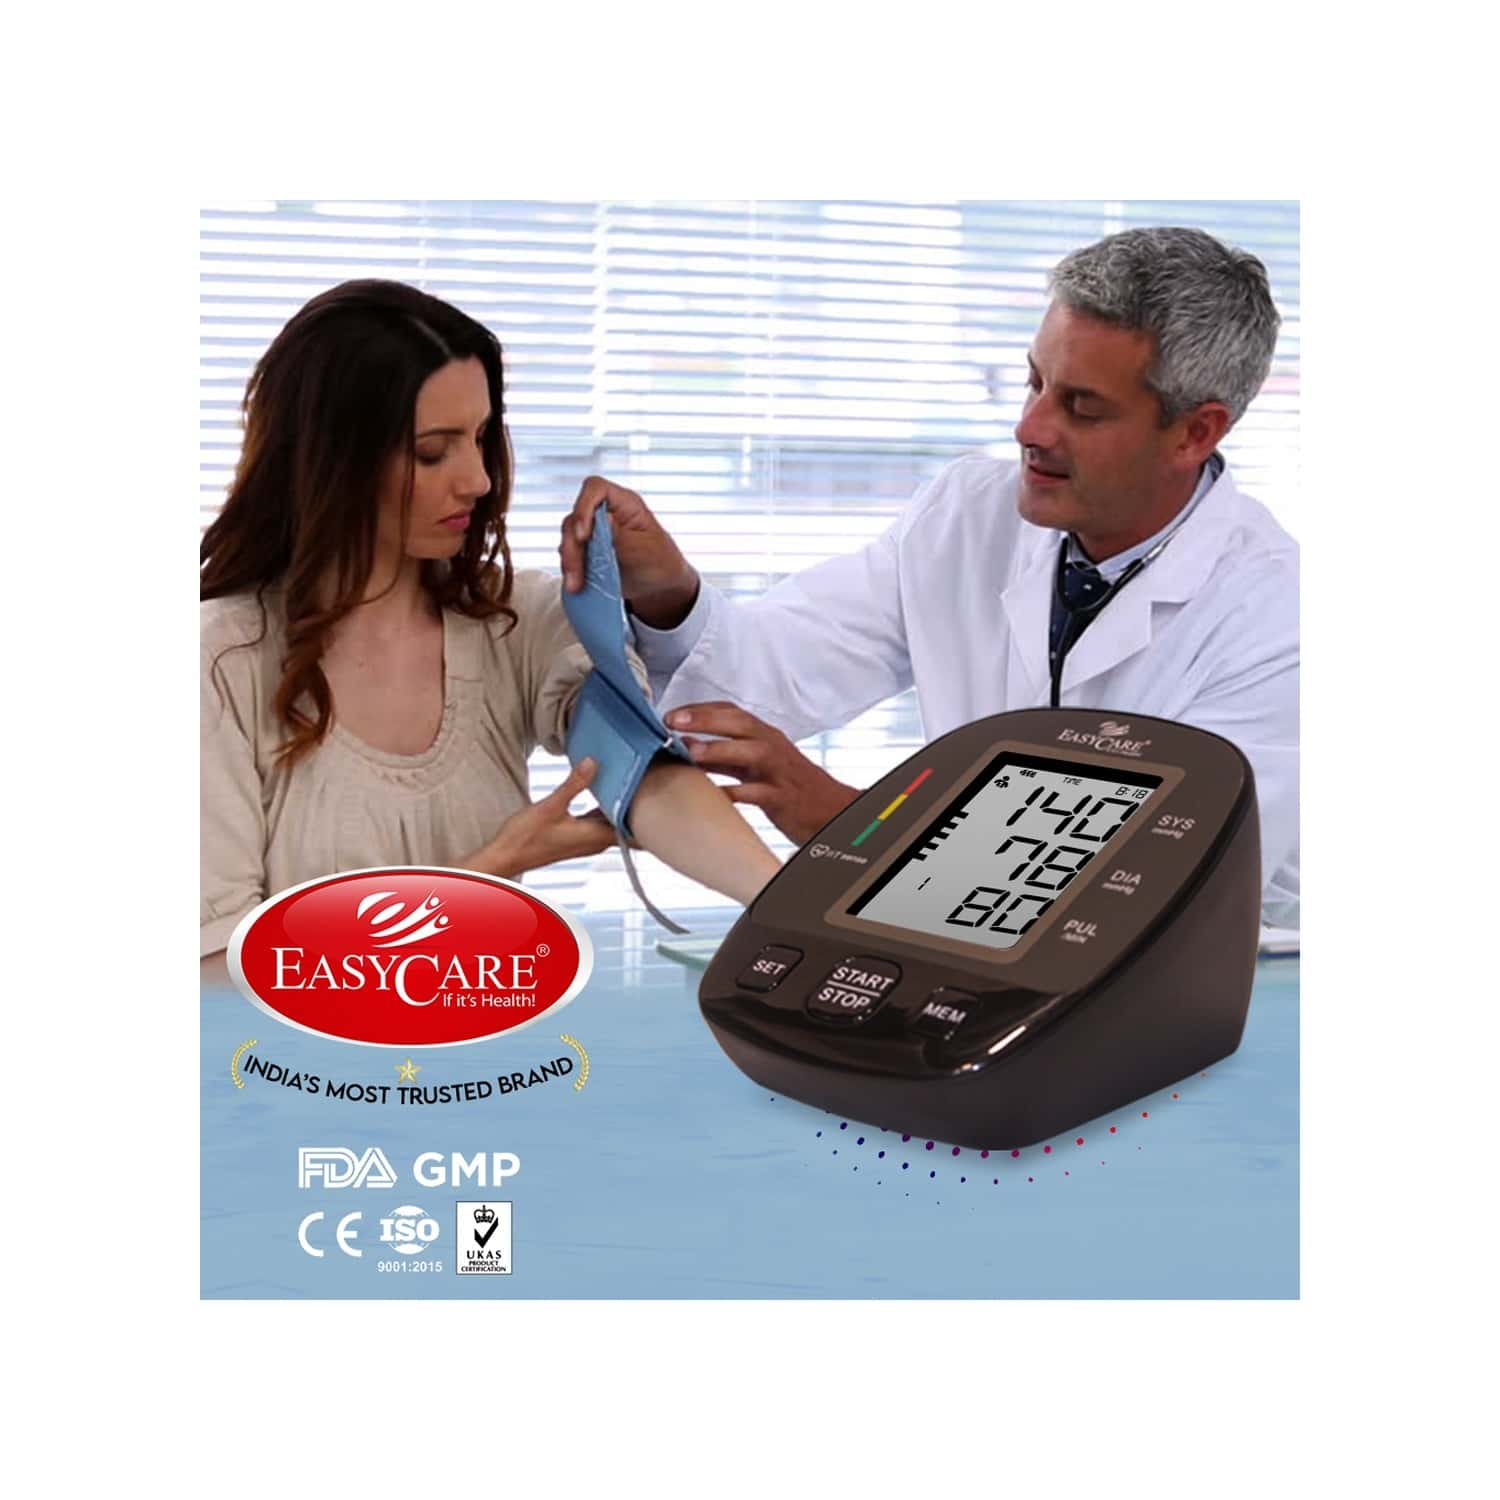 Easycare Big Display Digital Blood Pressure Monitor With Fully Automatic Arm Style